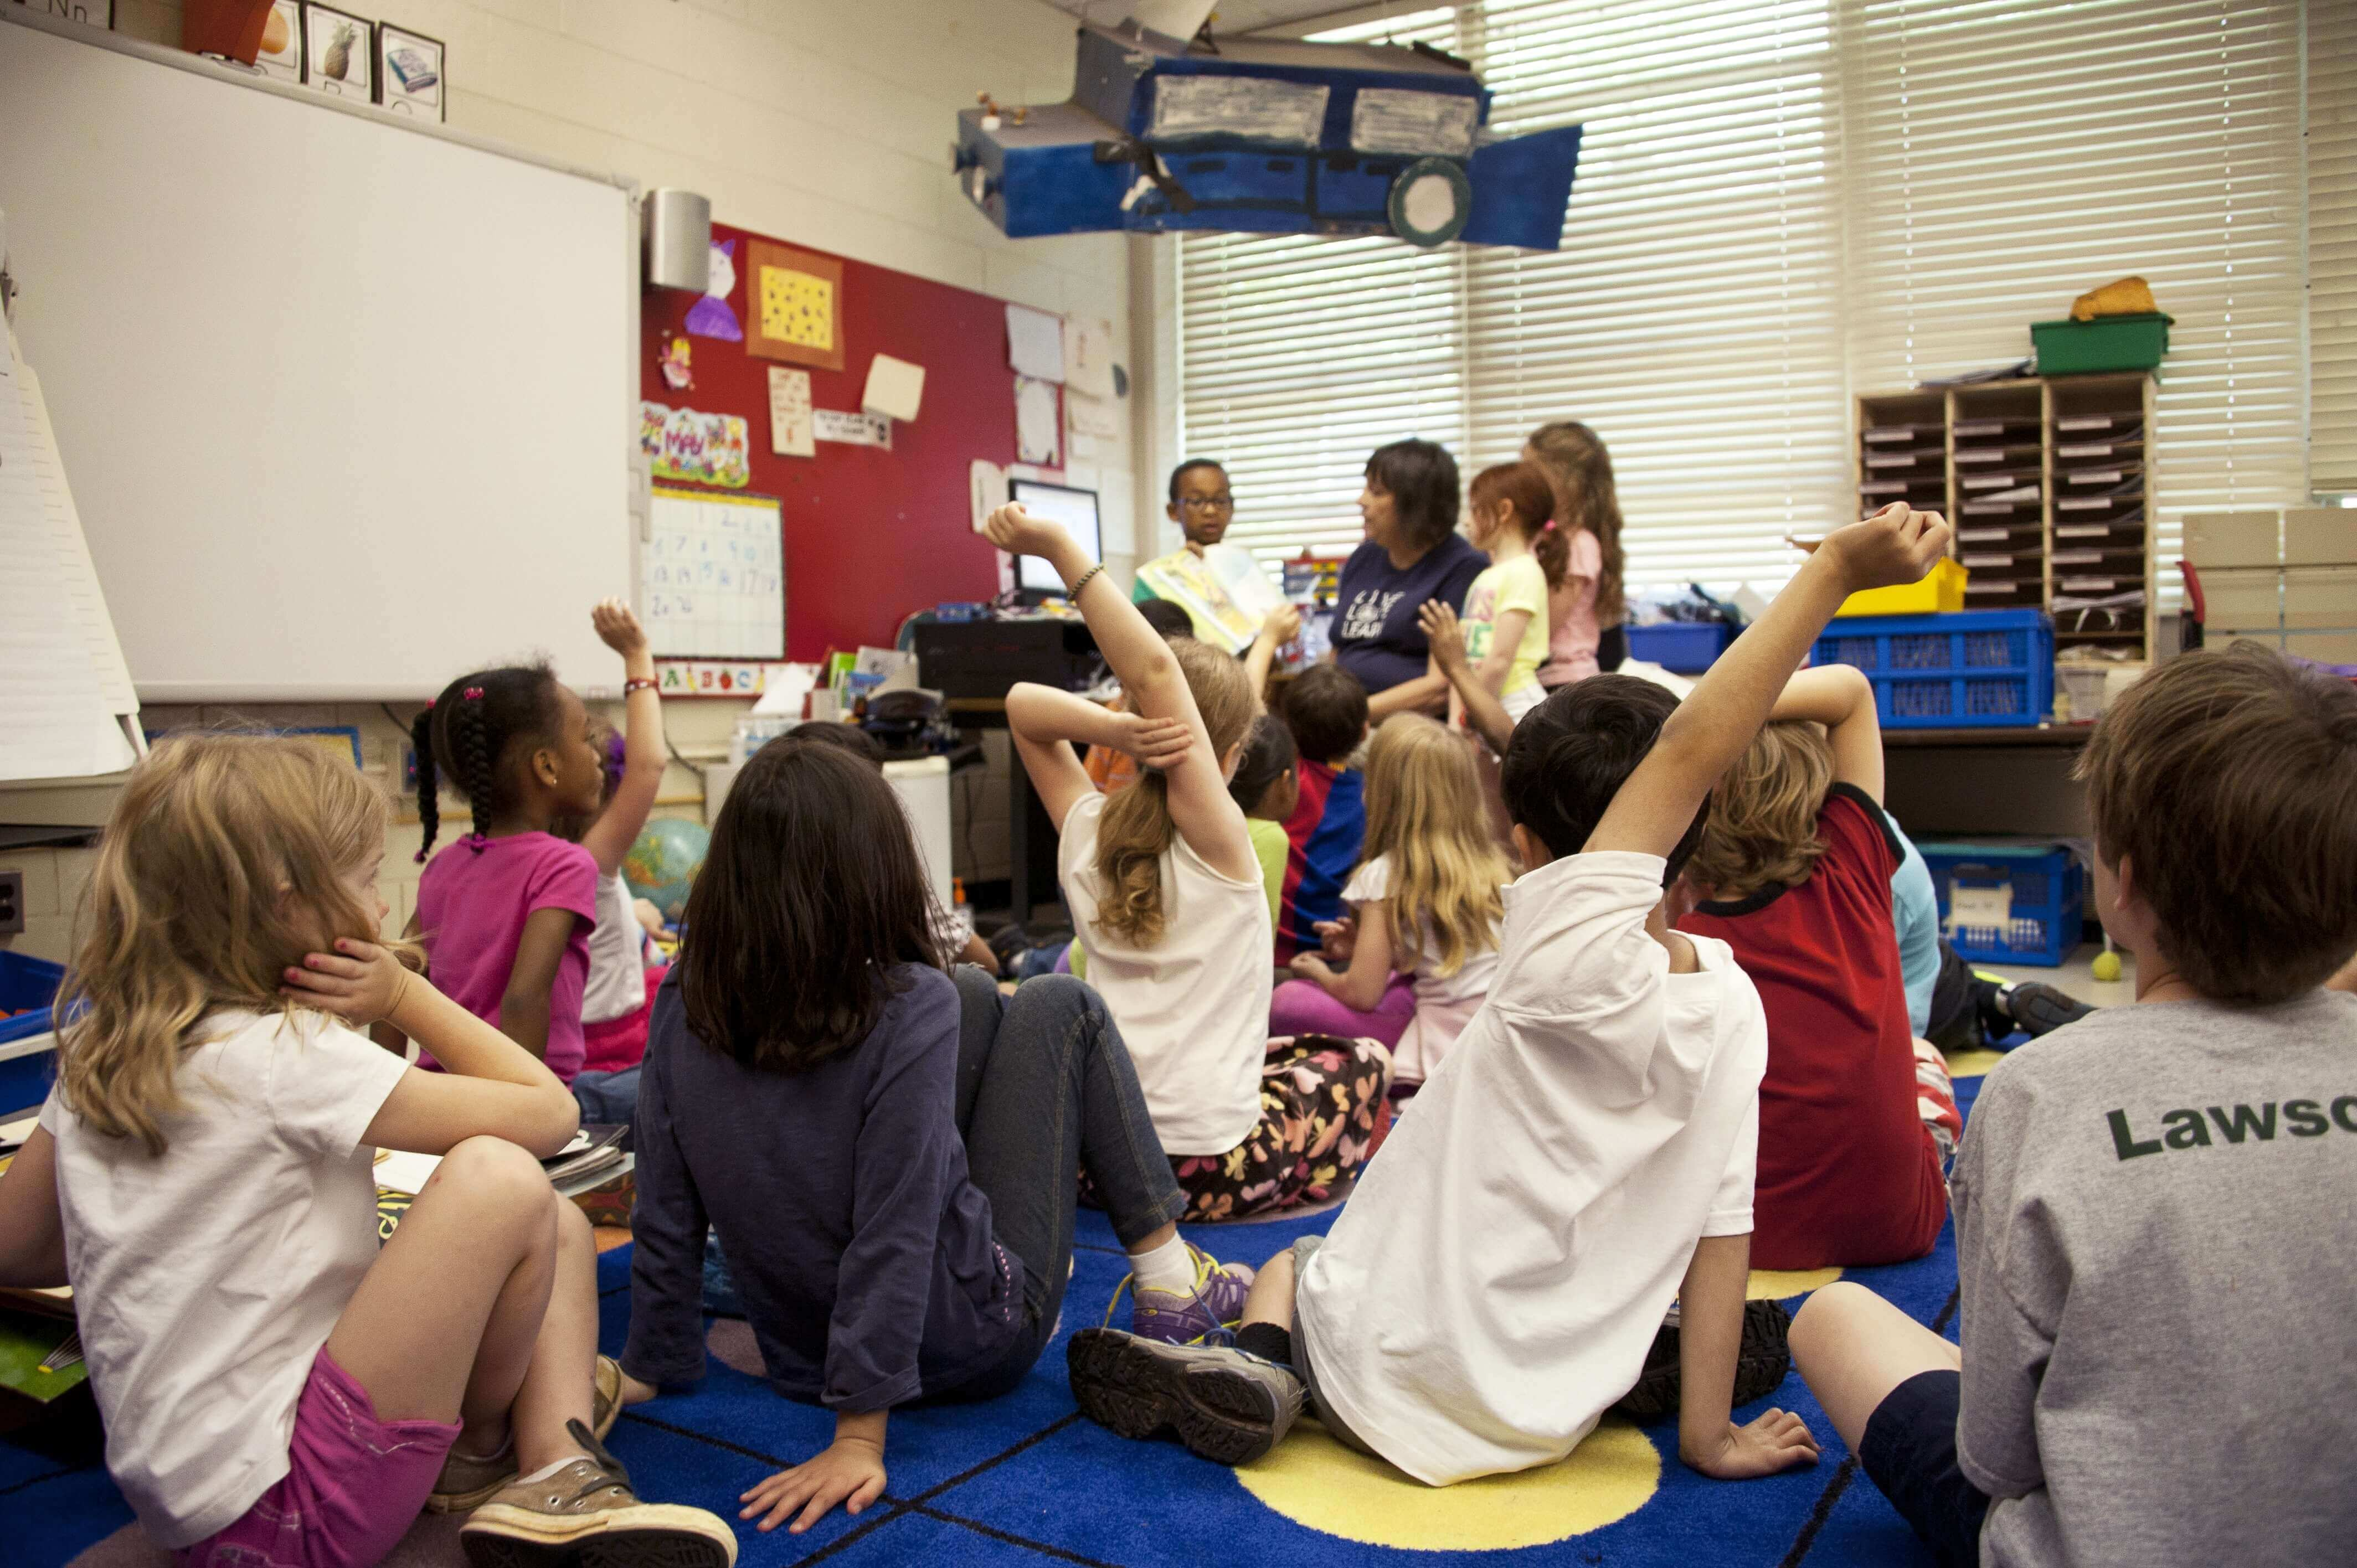 Multilingualism in the classroom